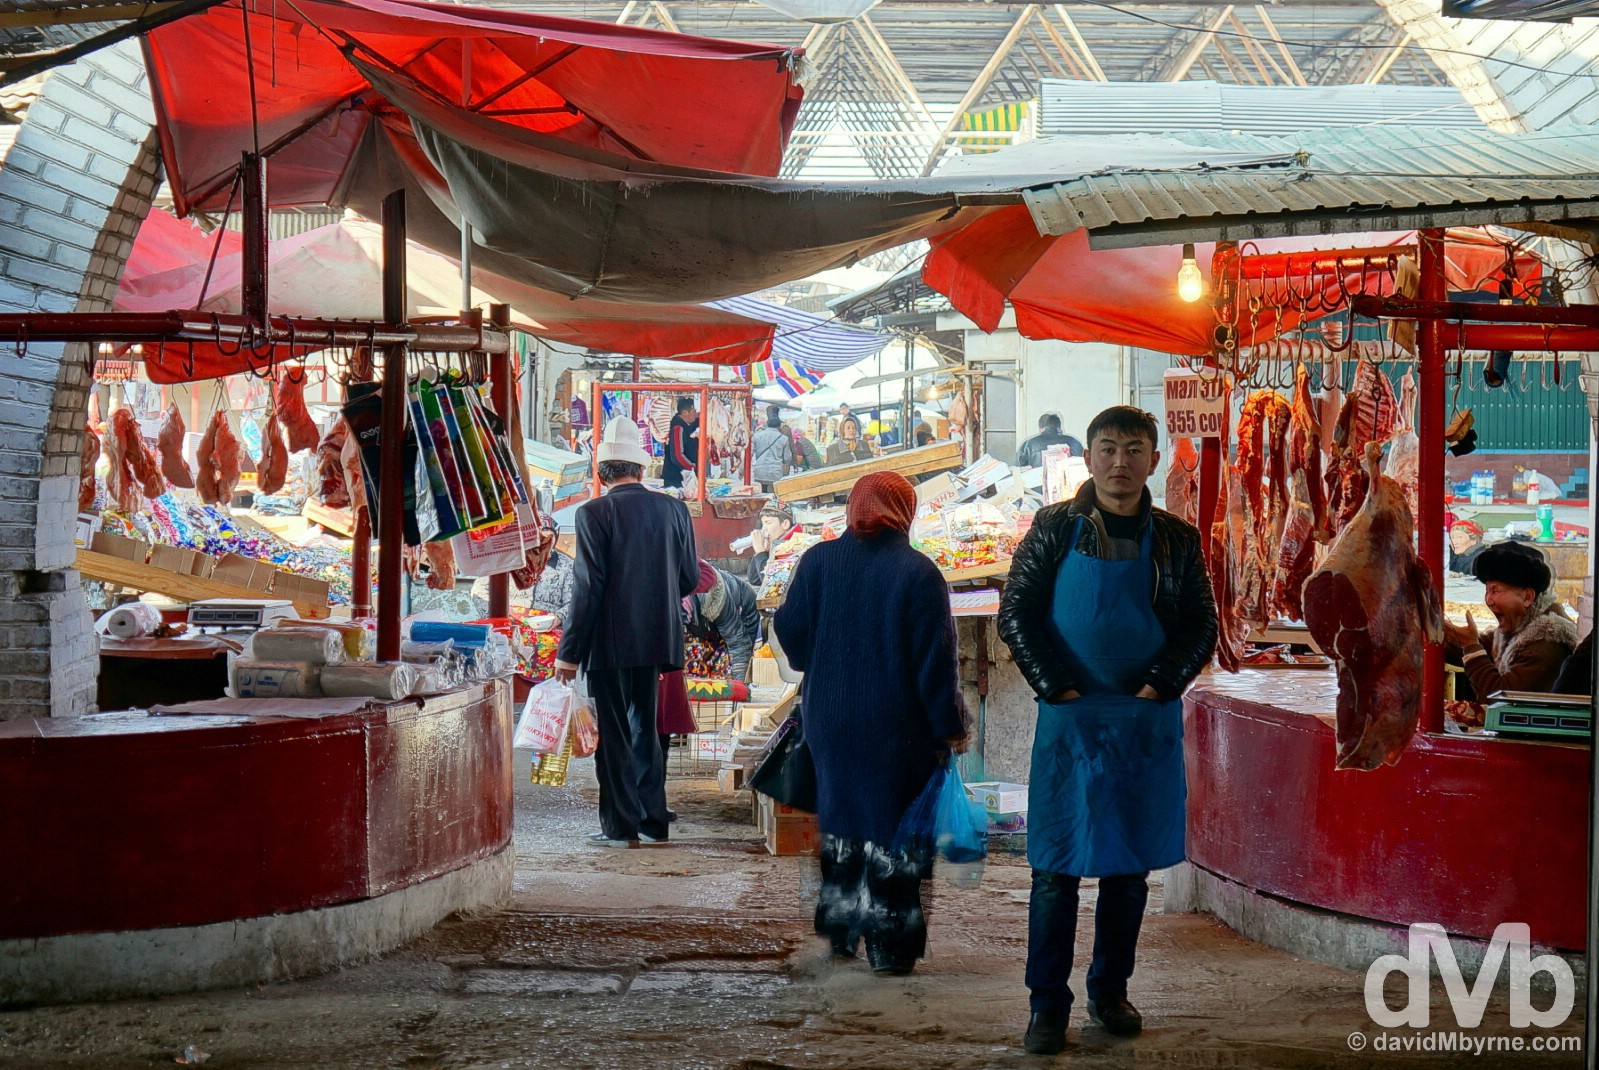 A section of the bazaar in Osh, southern Kyrgyzstan. March 3, 2015.